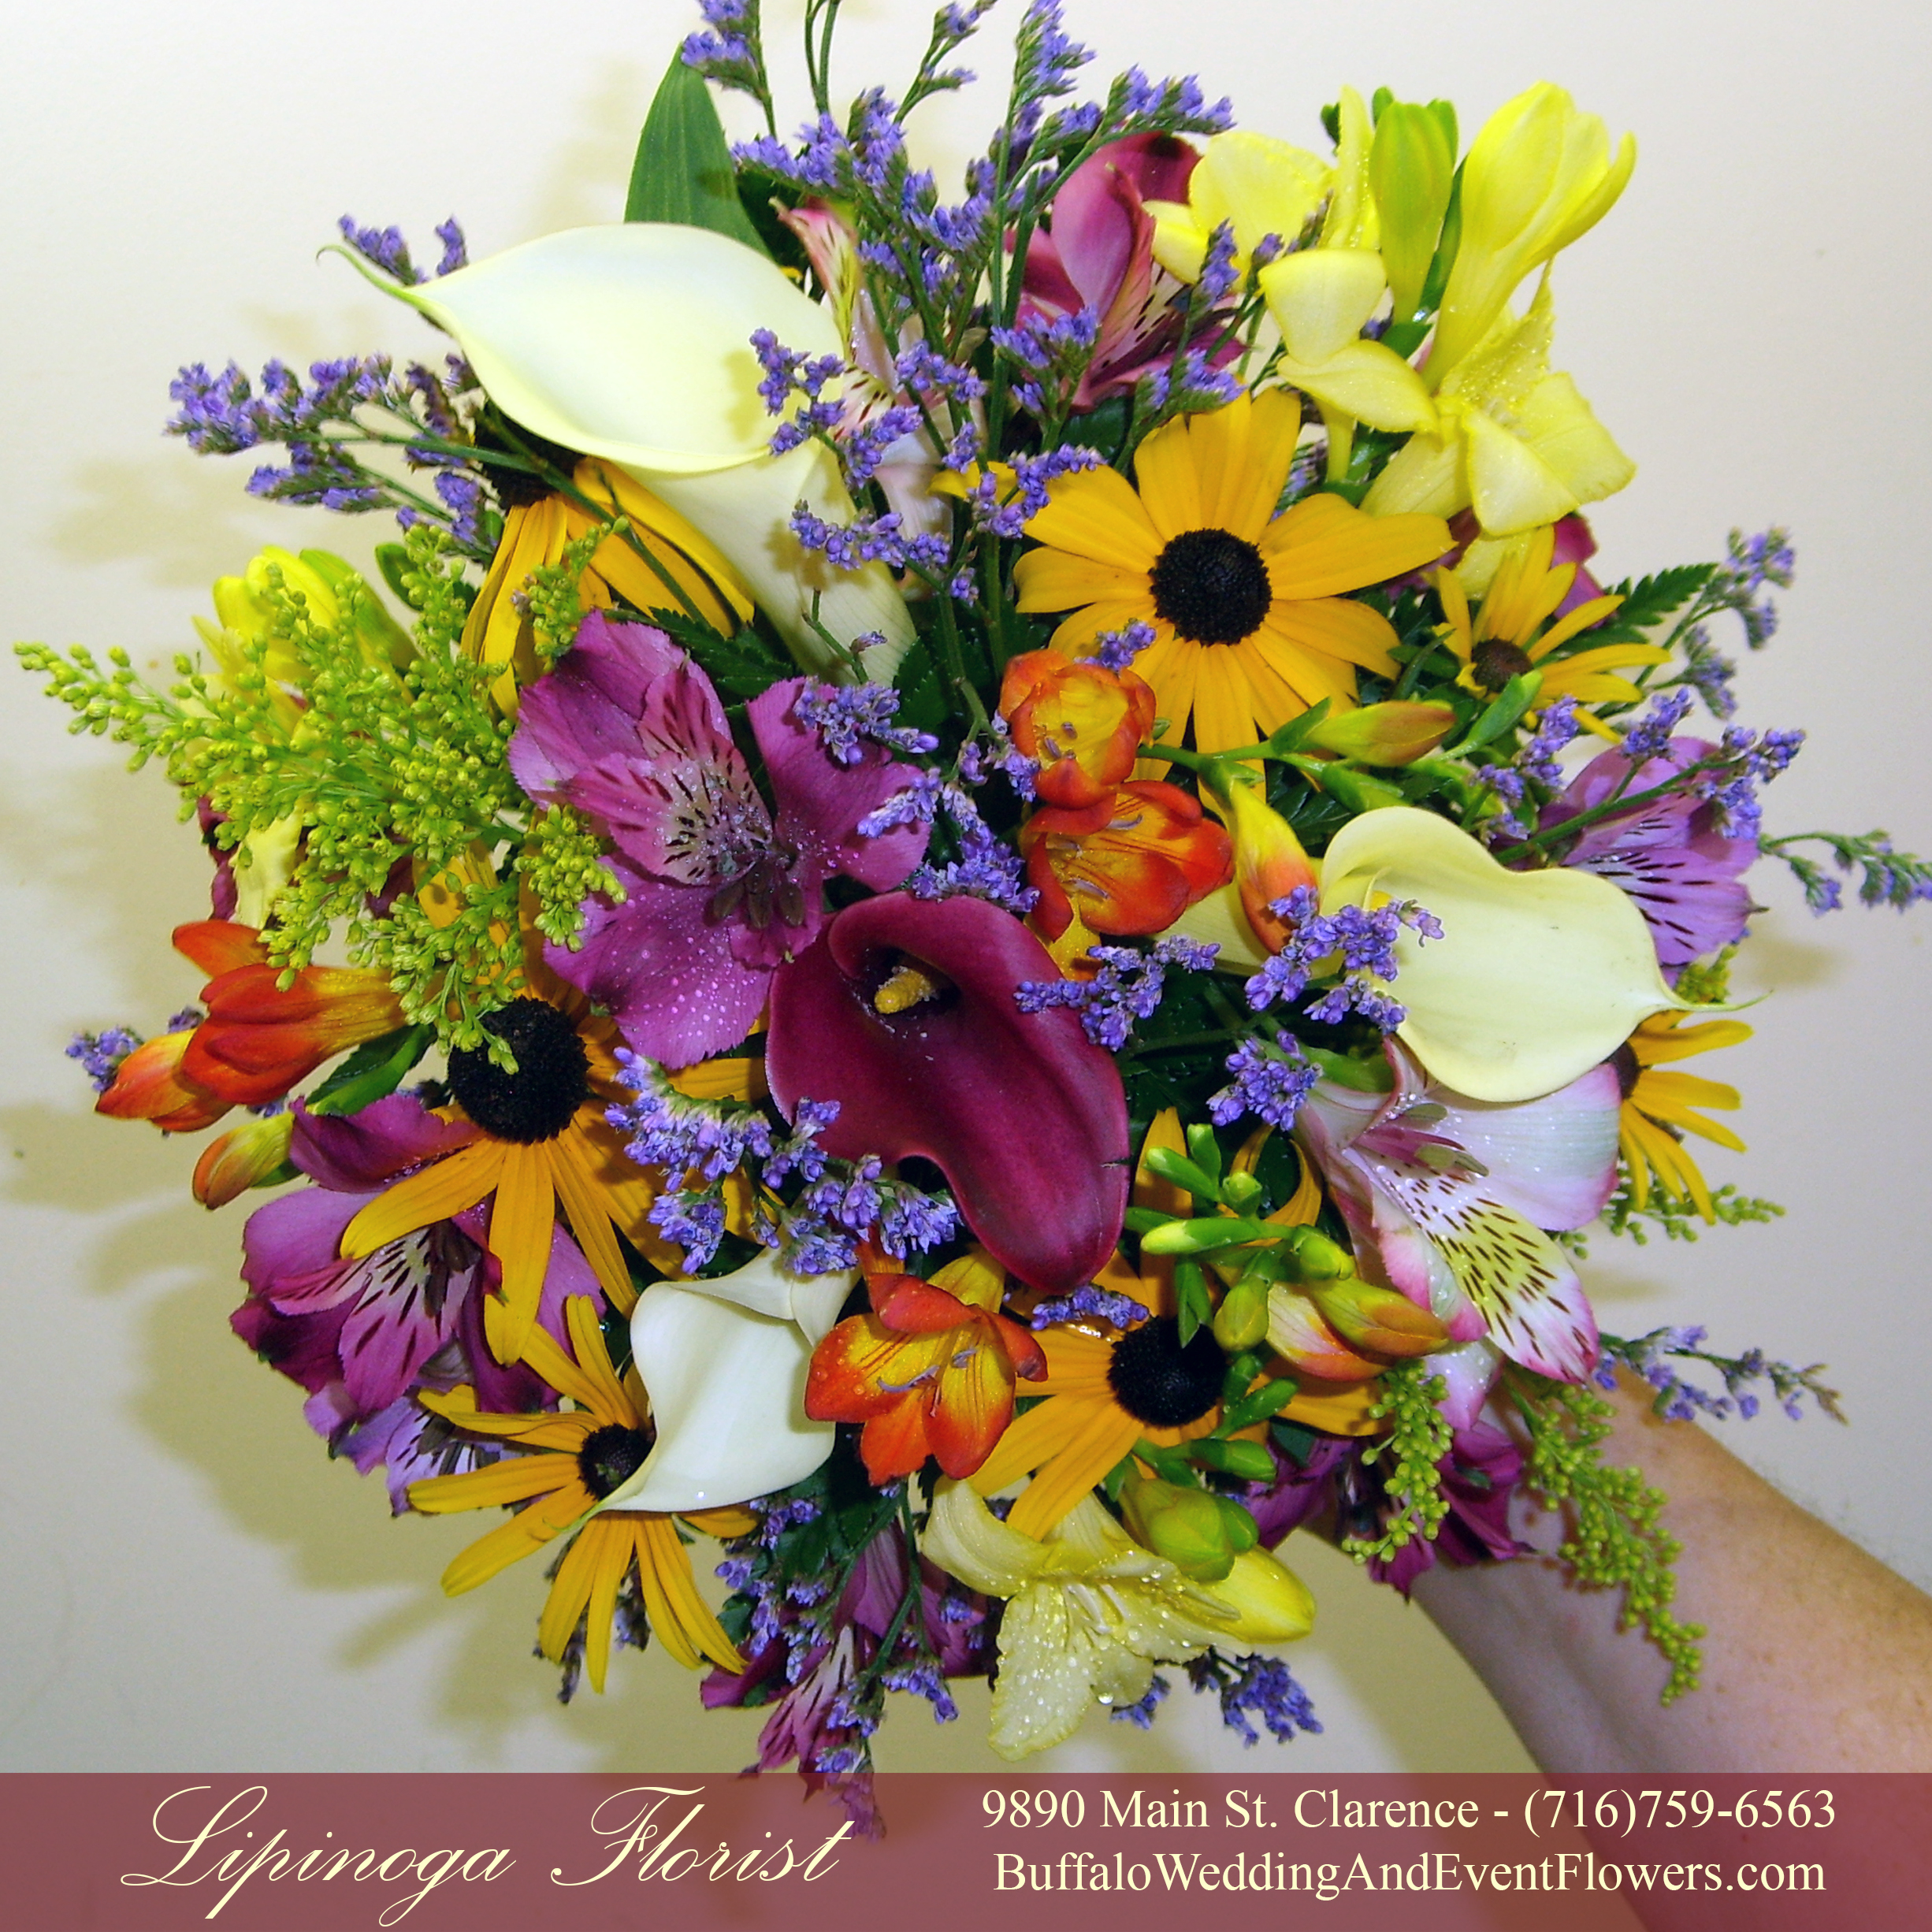 Wild Flower Wedding Bouquet: Buffalo Wedding & Event Flowers By